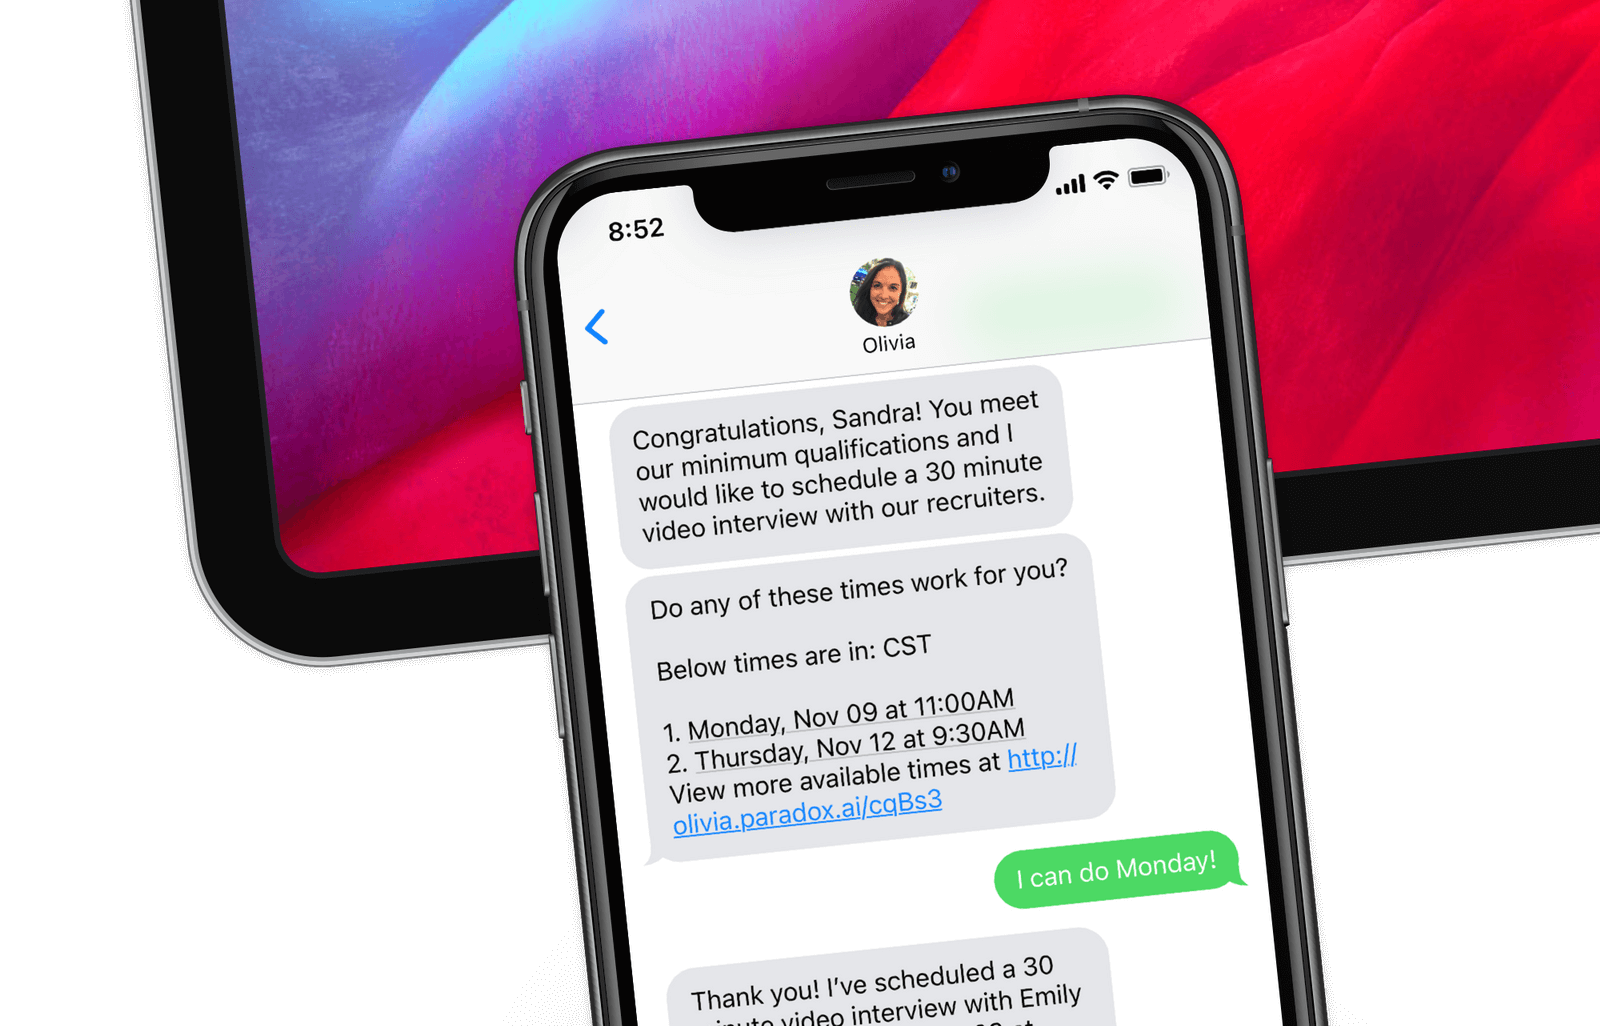 Schedule job candidate interviews through text messages by using AI recruiting assistant Olivia from Paradox